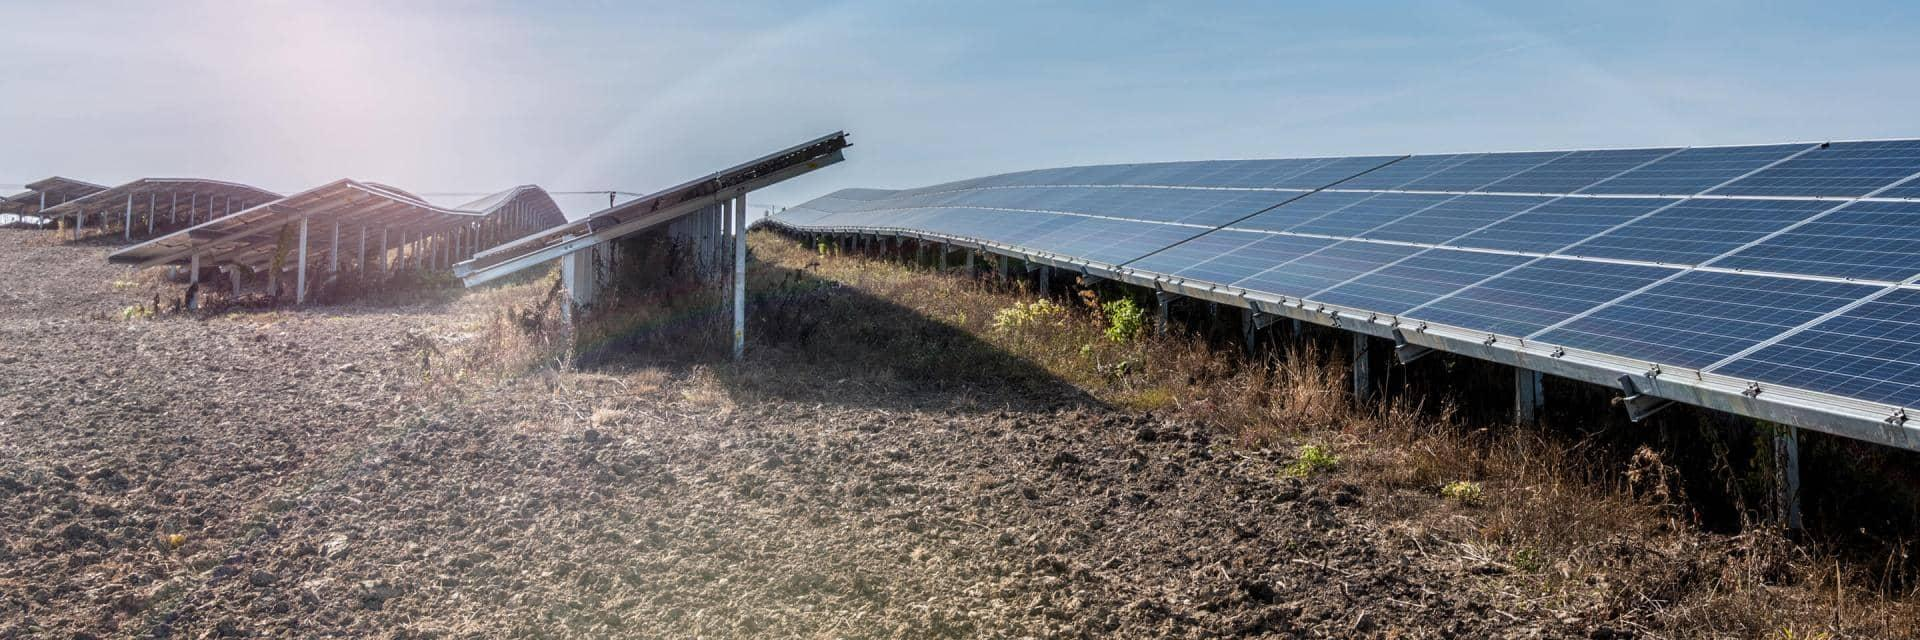 Five rows of large solar panels situated in a muddy field